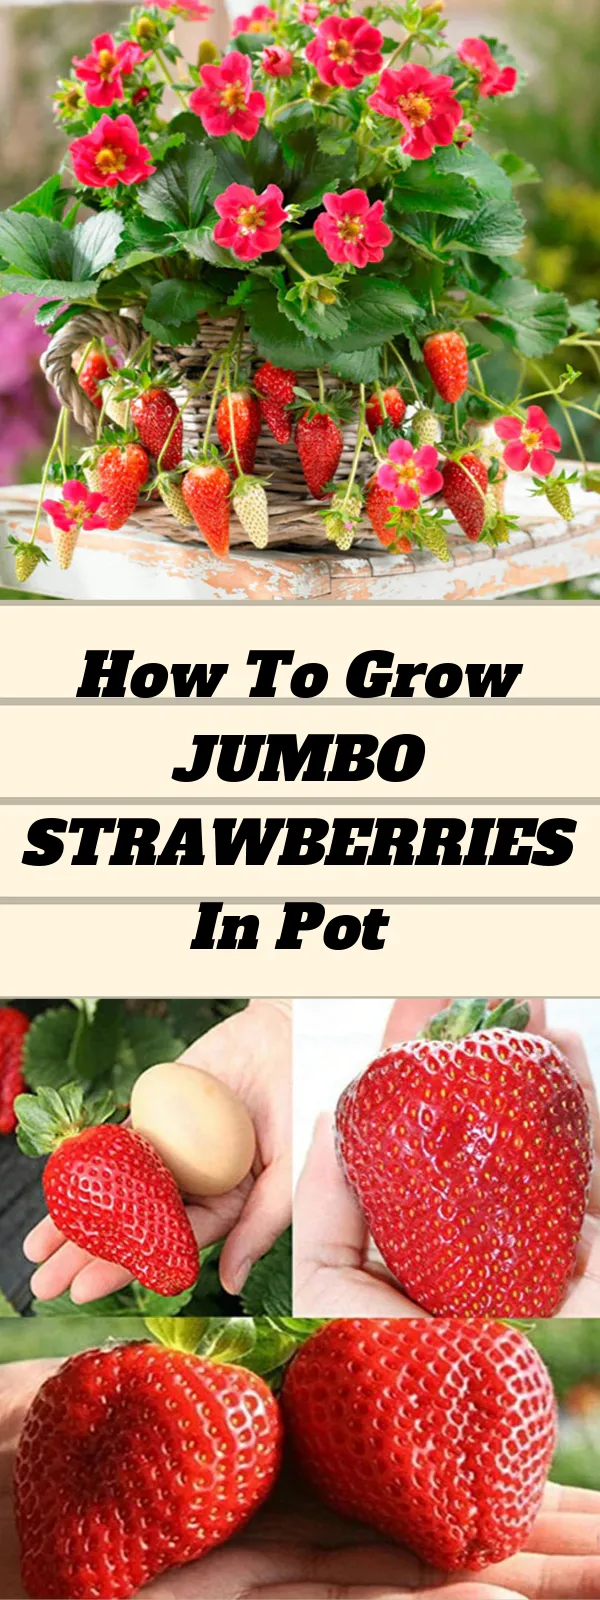 Growing Strawberries In Containers Growing Strawberries In Containers Strawberries In Containers Growing Strawberries